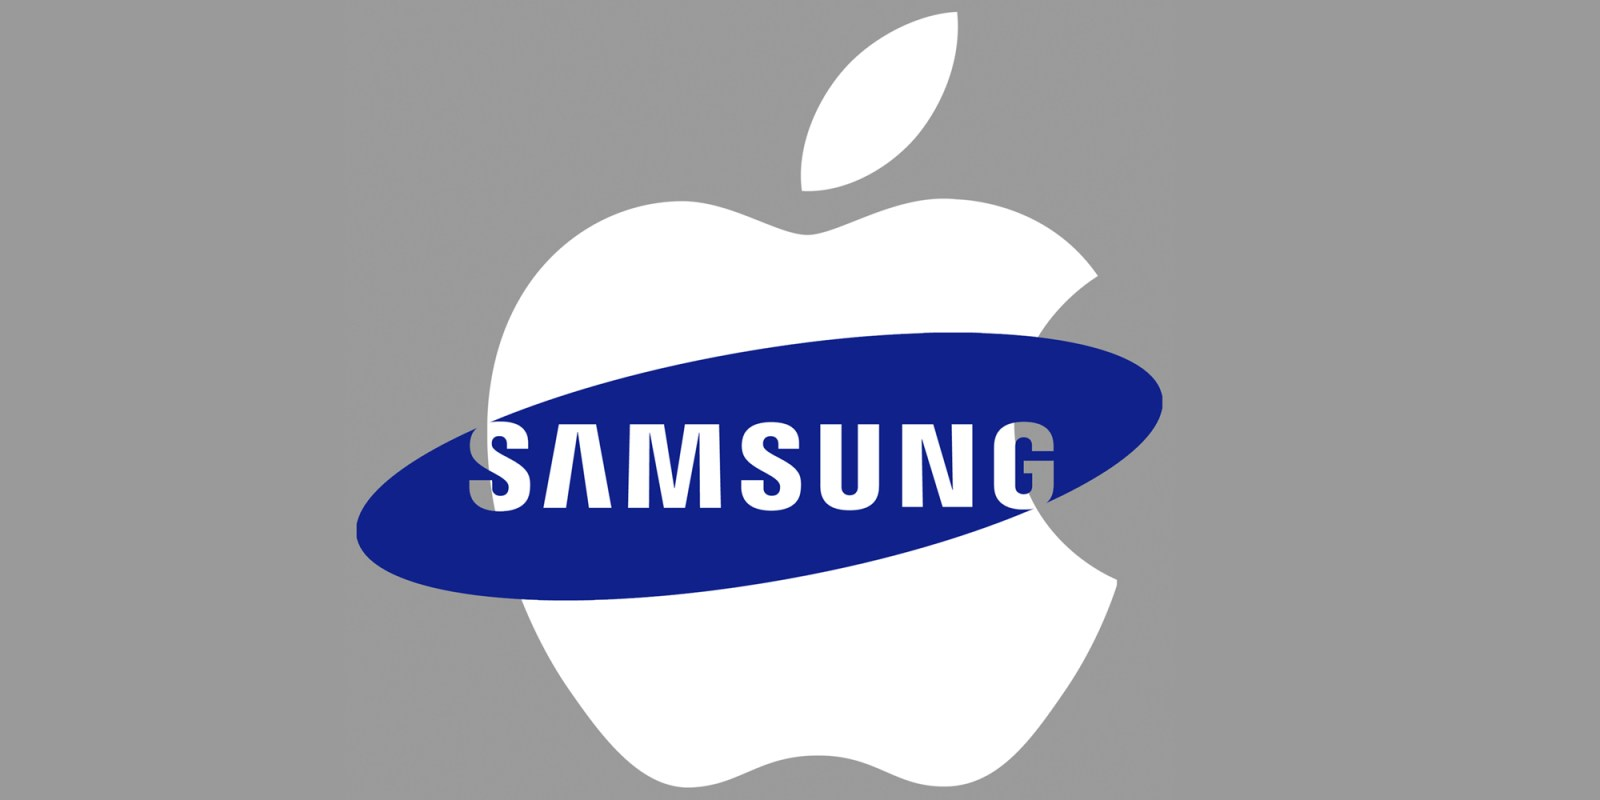 Apple loses market leadership to Samsung as number one smartphone OEM in the US